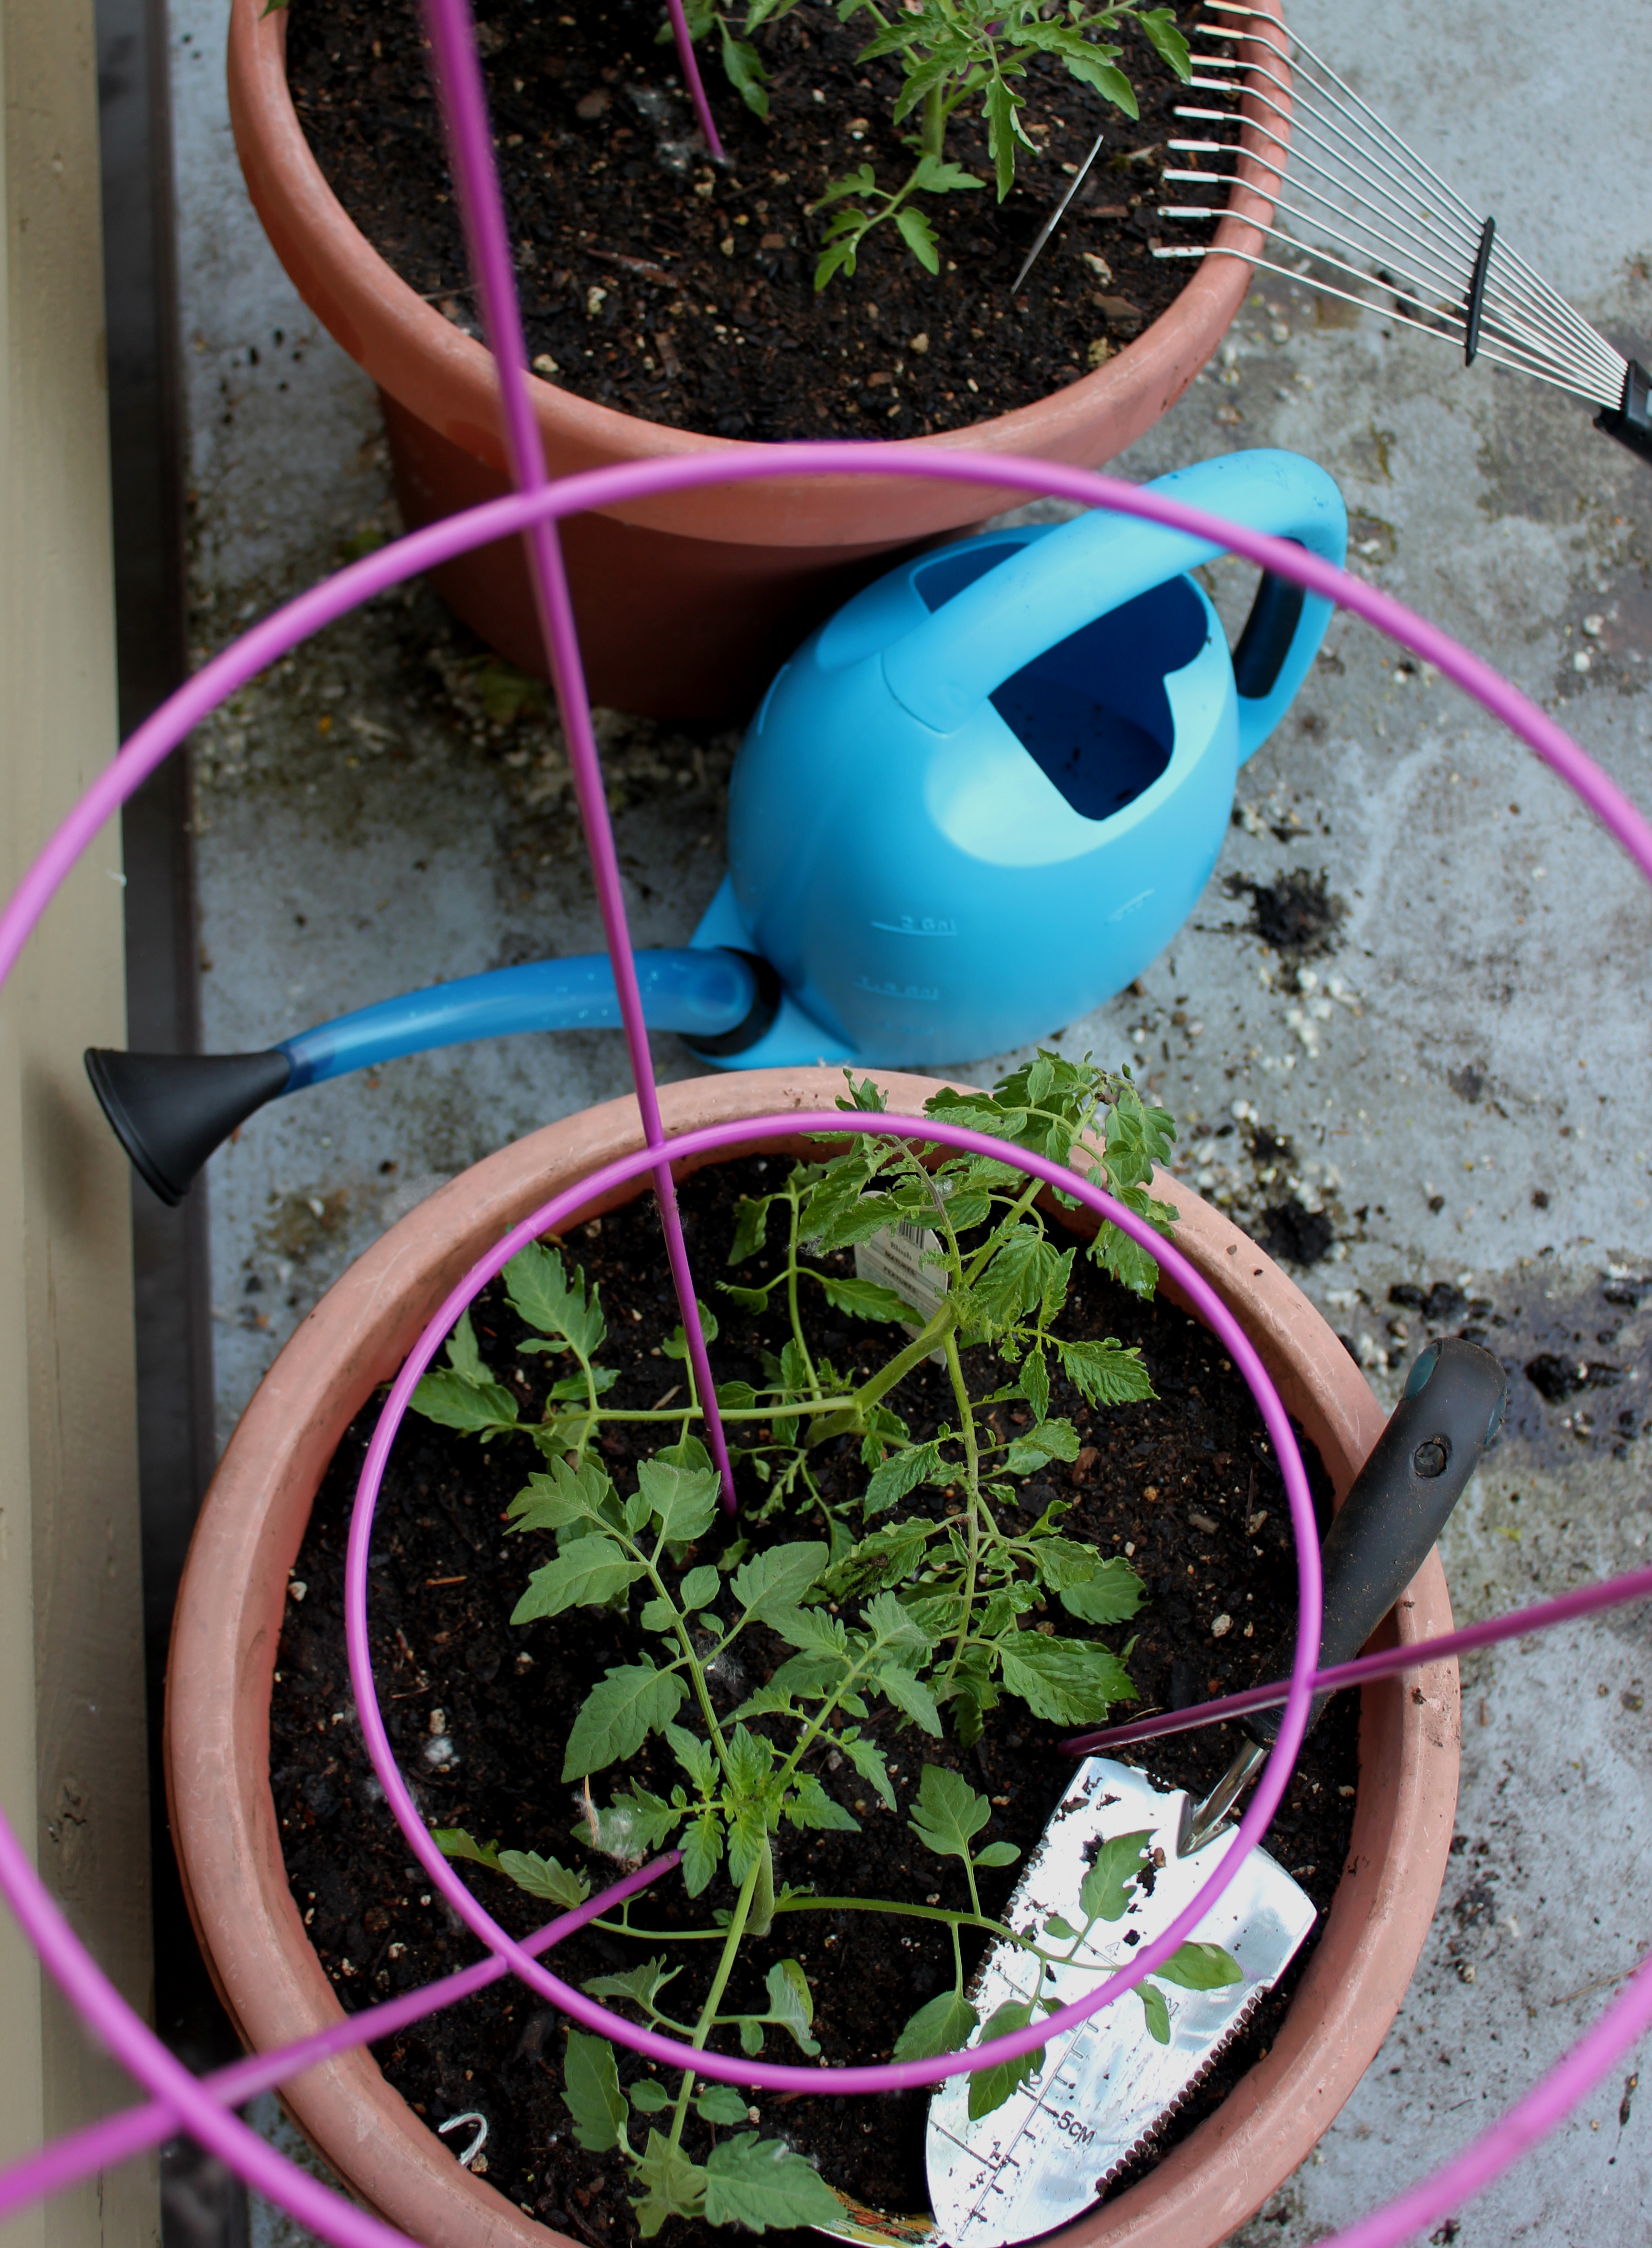 Planting Tomatoes With Oxo Gardening Tools (9)